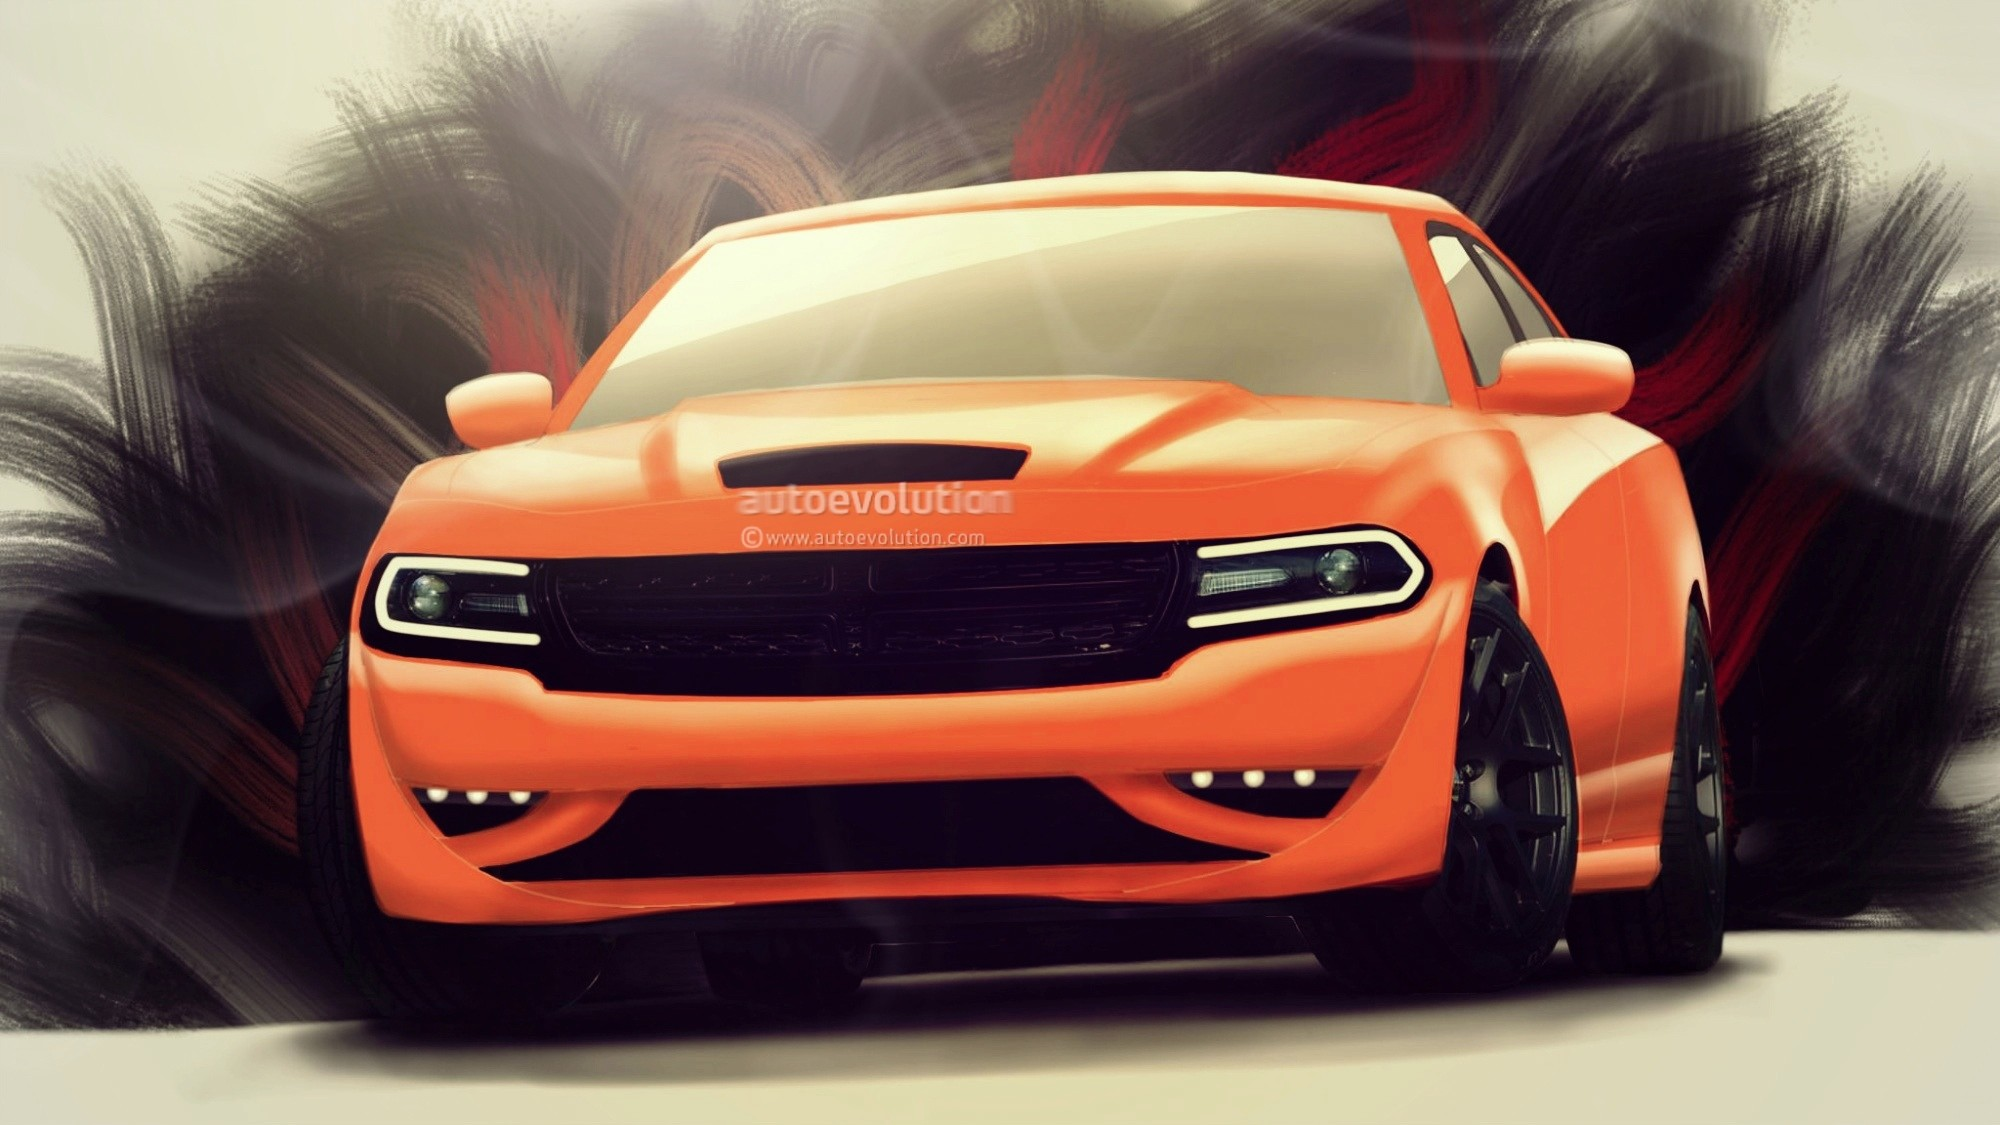 2000x1125 2015 Dodge Charger Srt Hellcat Sedan Custom Orange Autoevolution